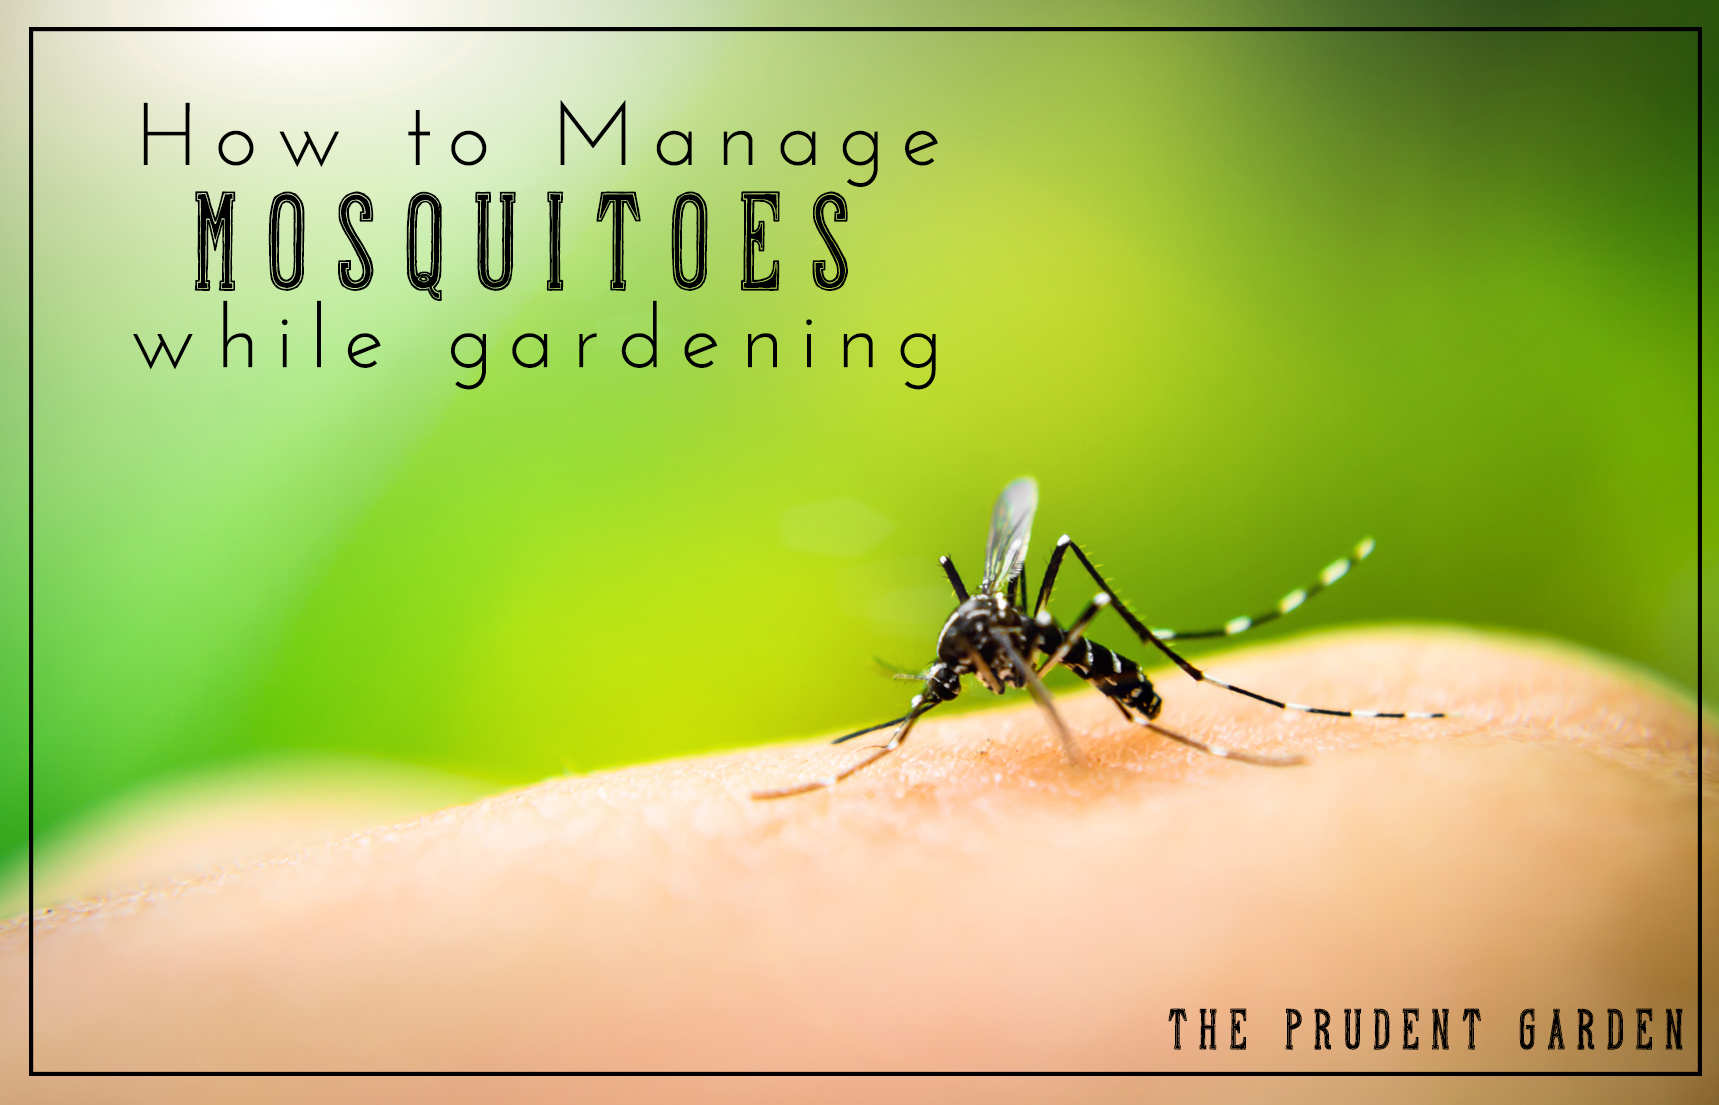 to manage mosquitoes while gardening